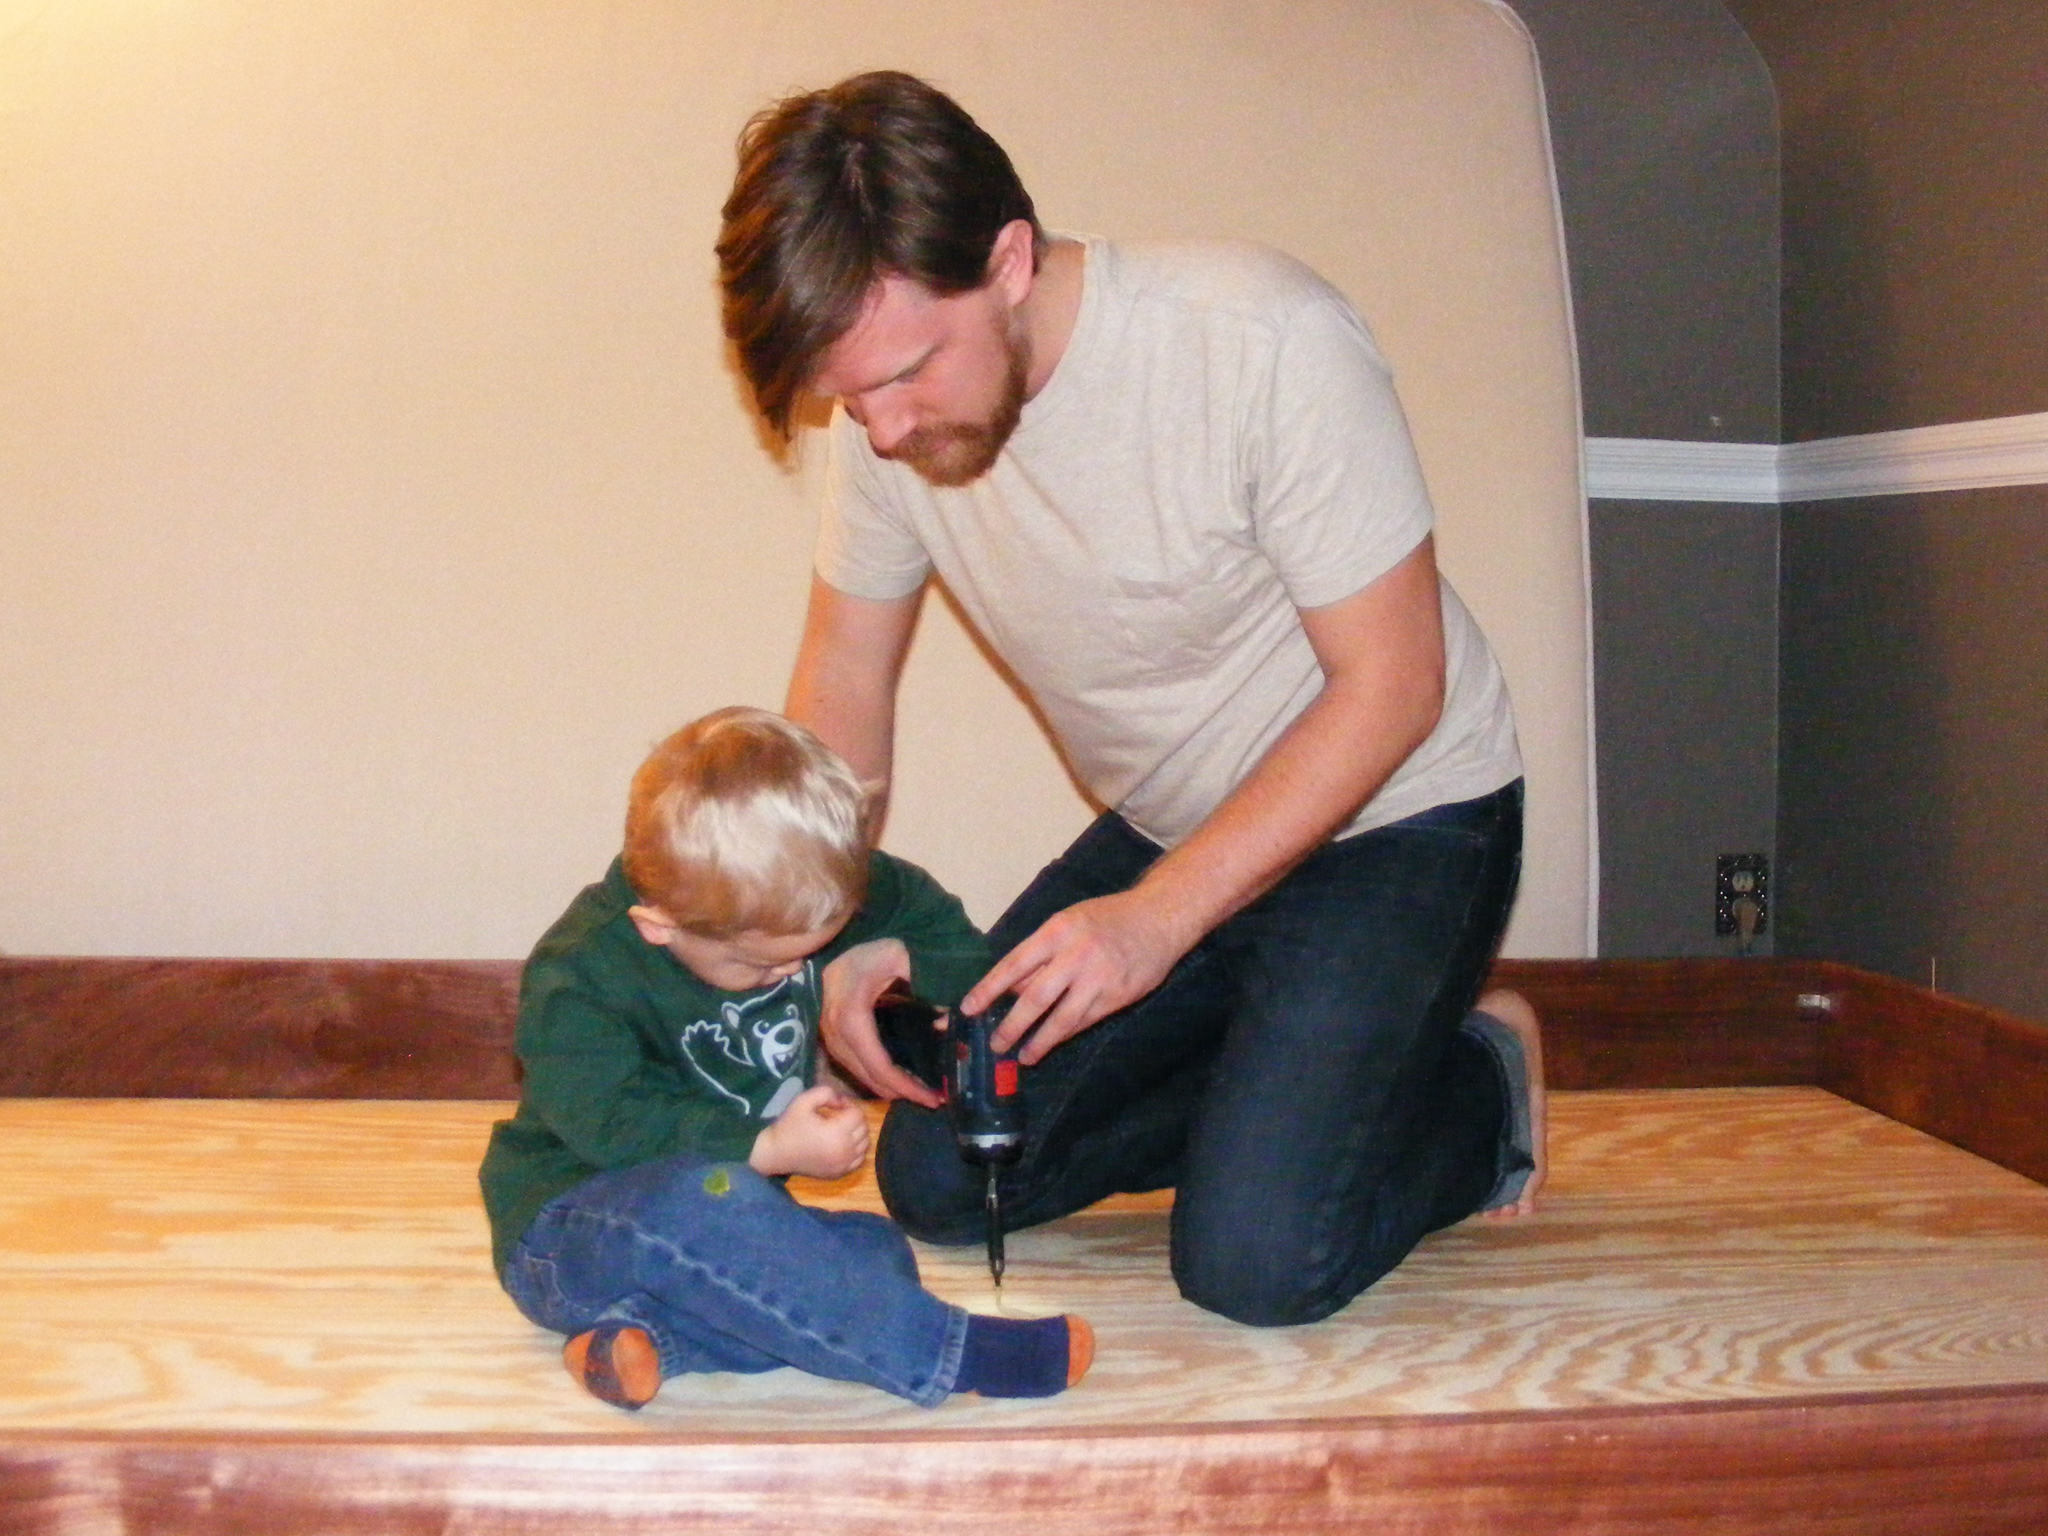 Elias helped me drive the last screw attaching the plywood to the bed frame.